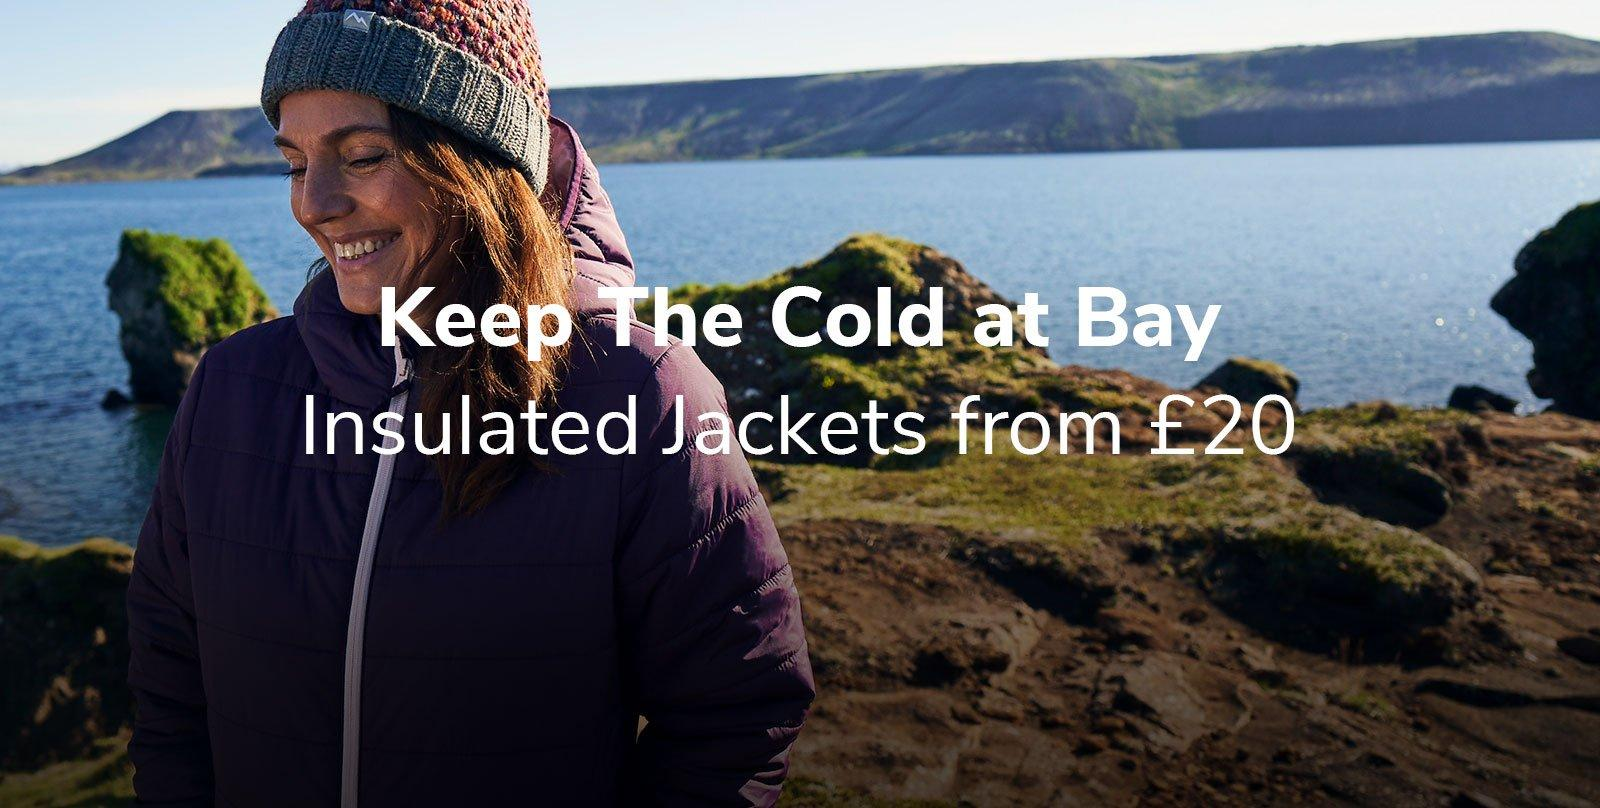 Insulated Jackets from £20